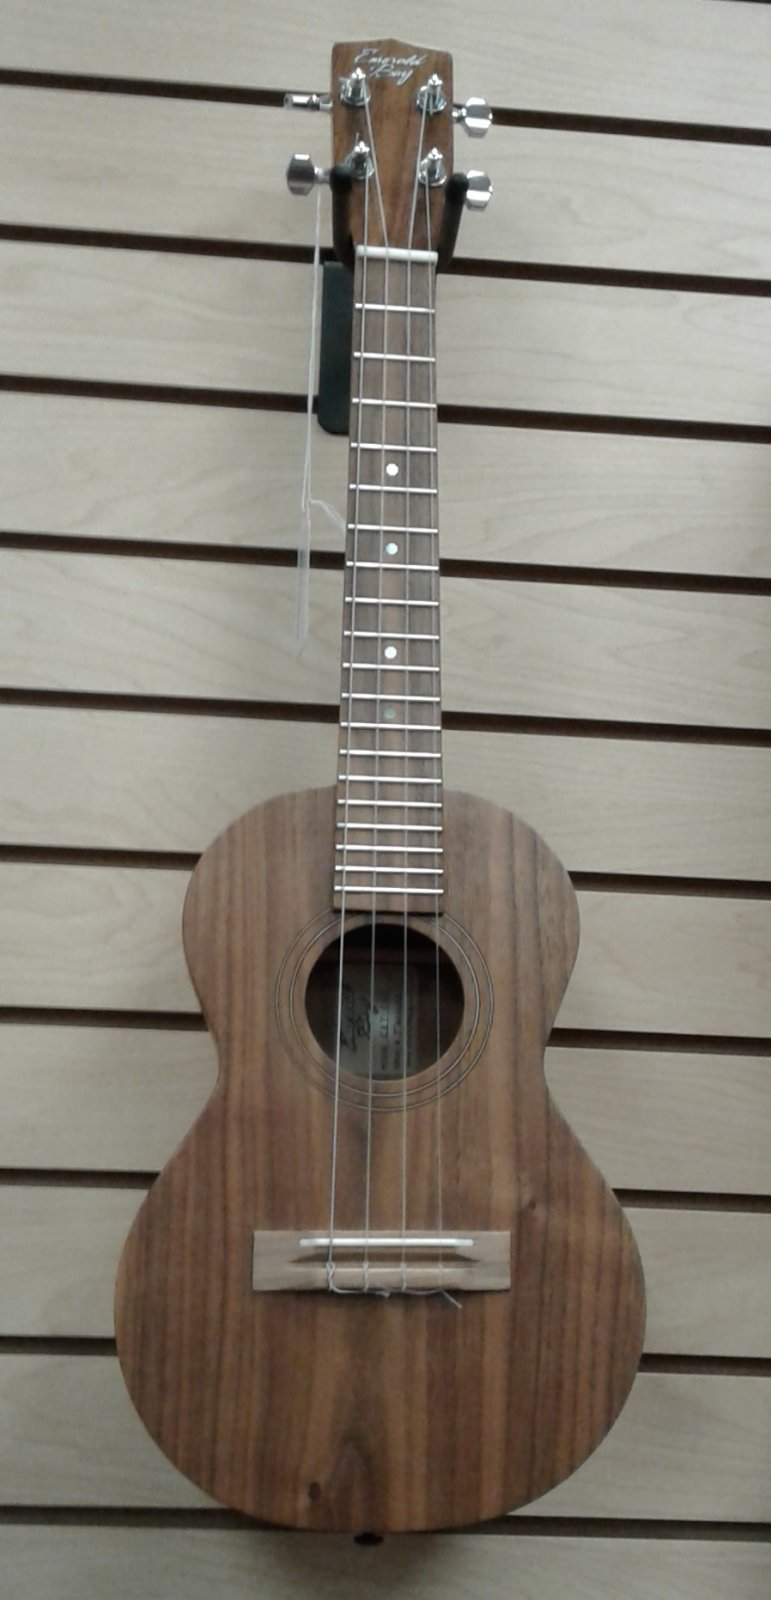 Emerald Bay Custom Tenor Ukulele - California Walnut